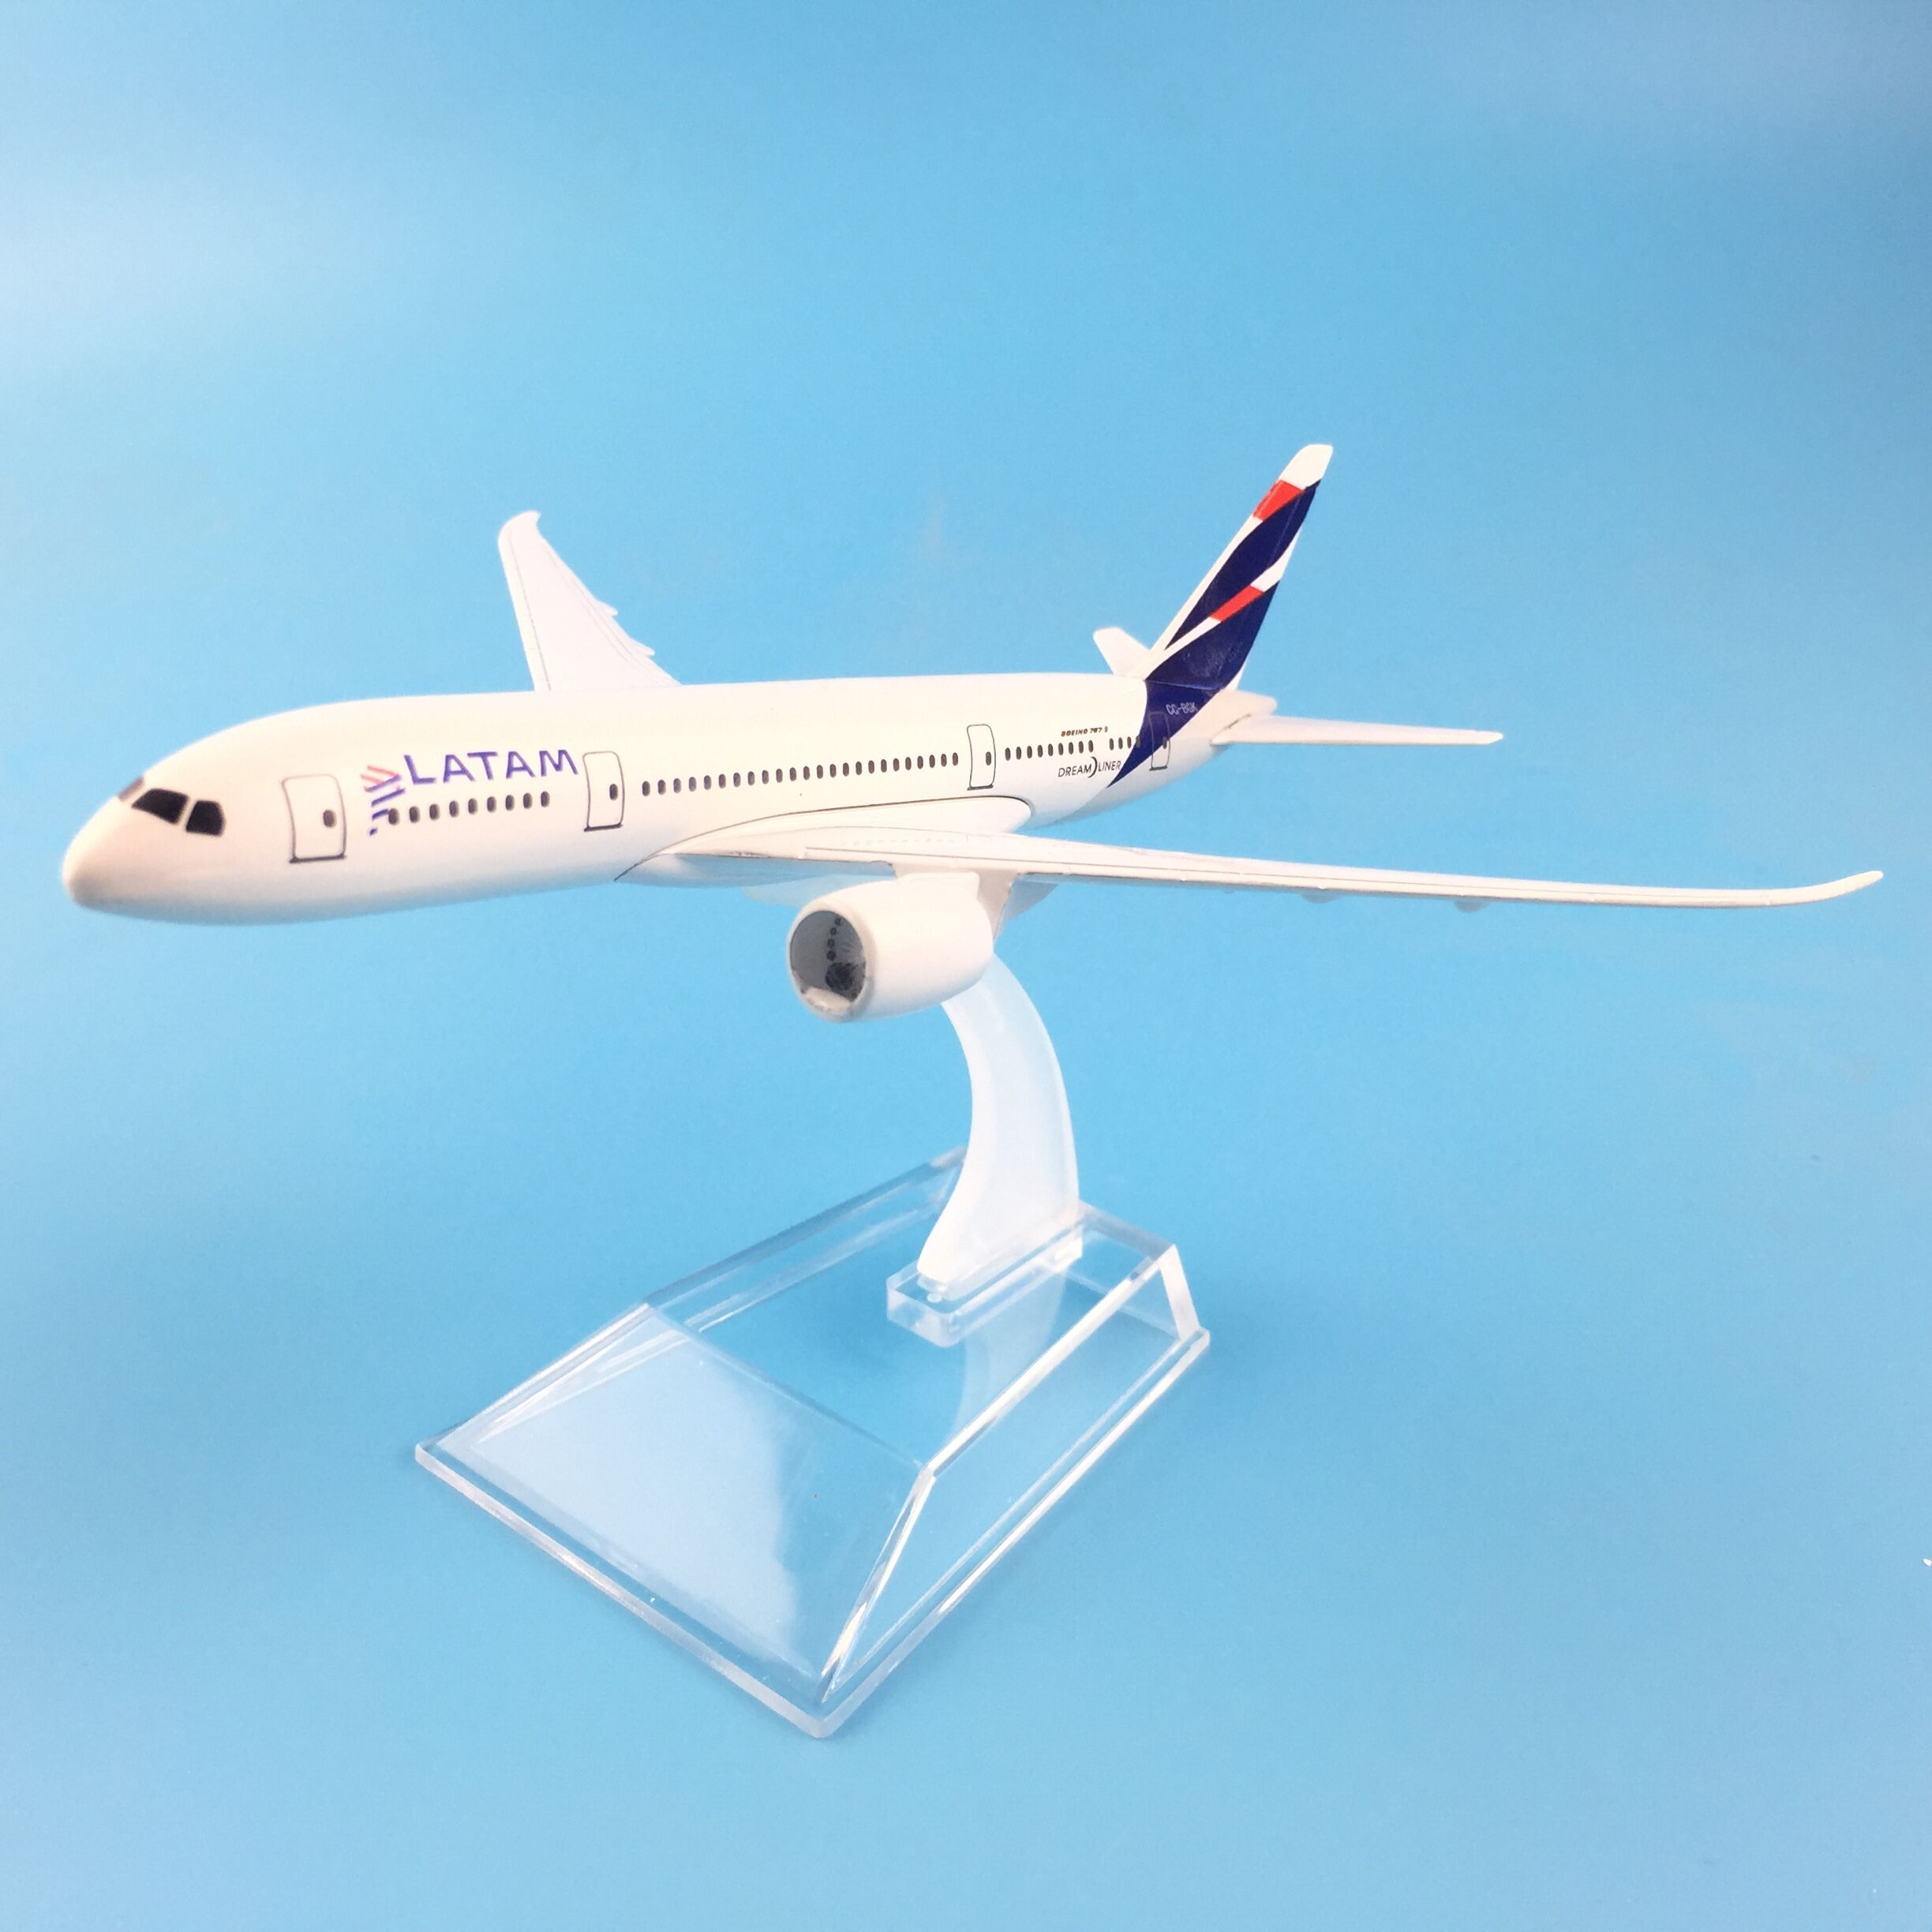 16CM LATAM Airlines Metal Diecast Aircraft Model ,Airbus Airplane Model Kids Toys Plane Children New Year/Birthday/Collections